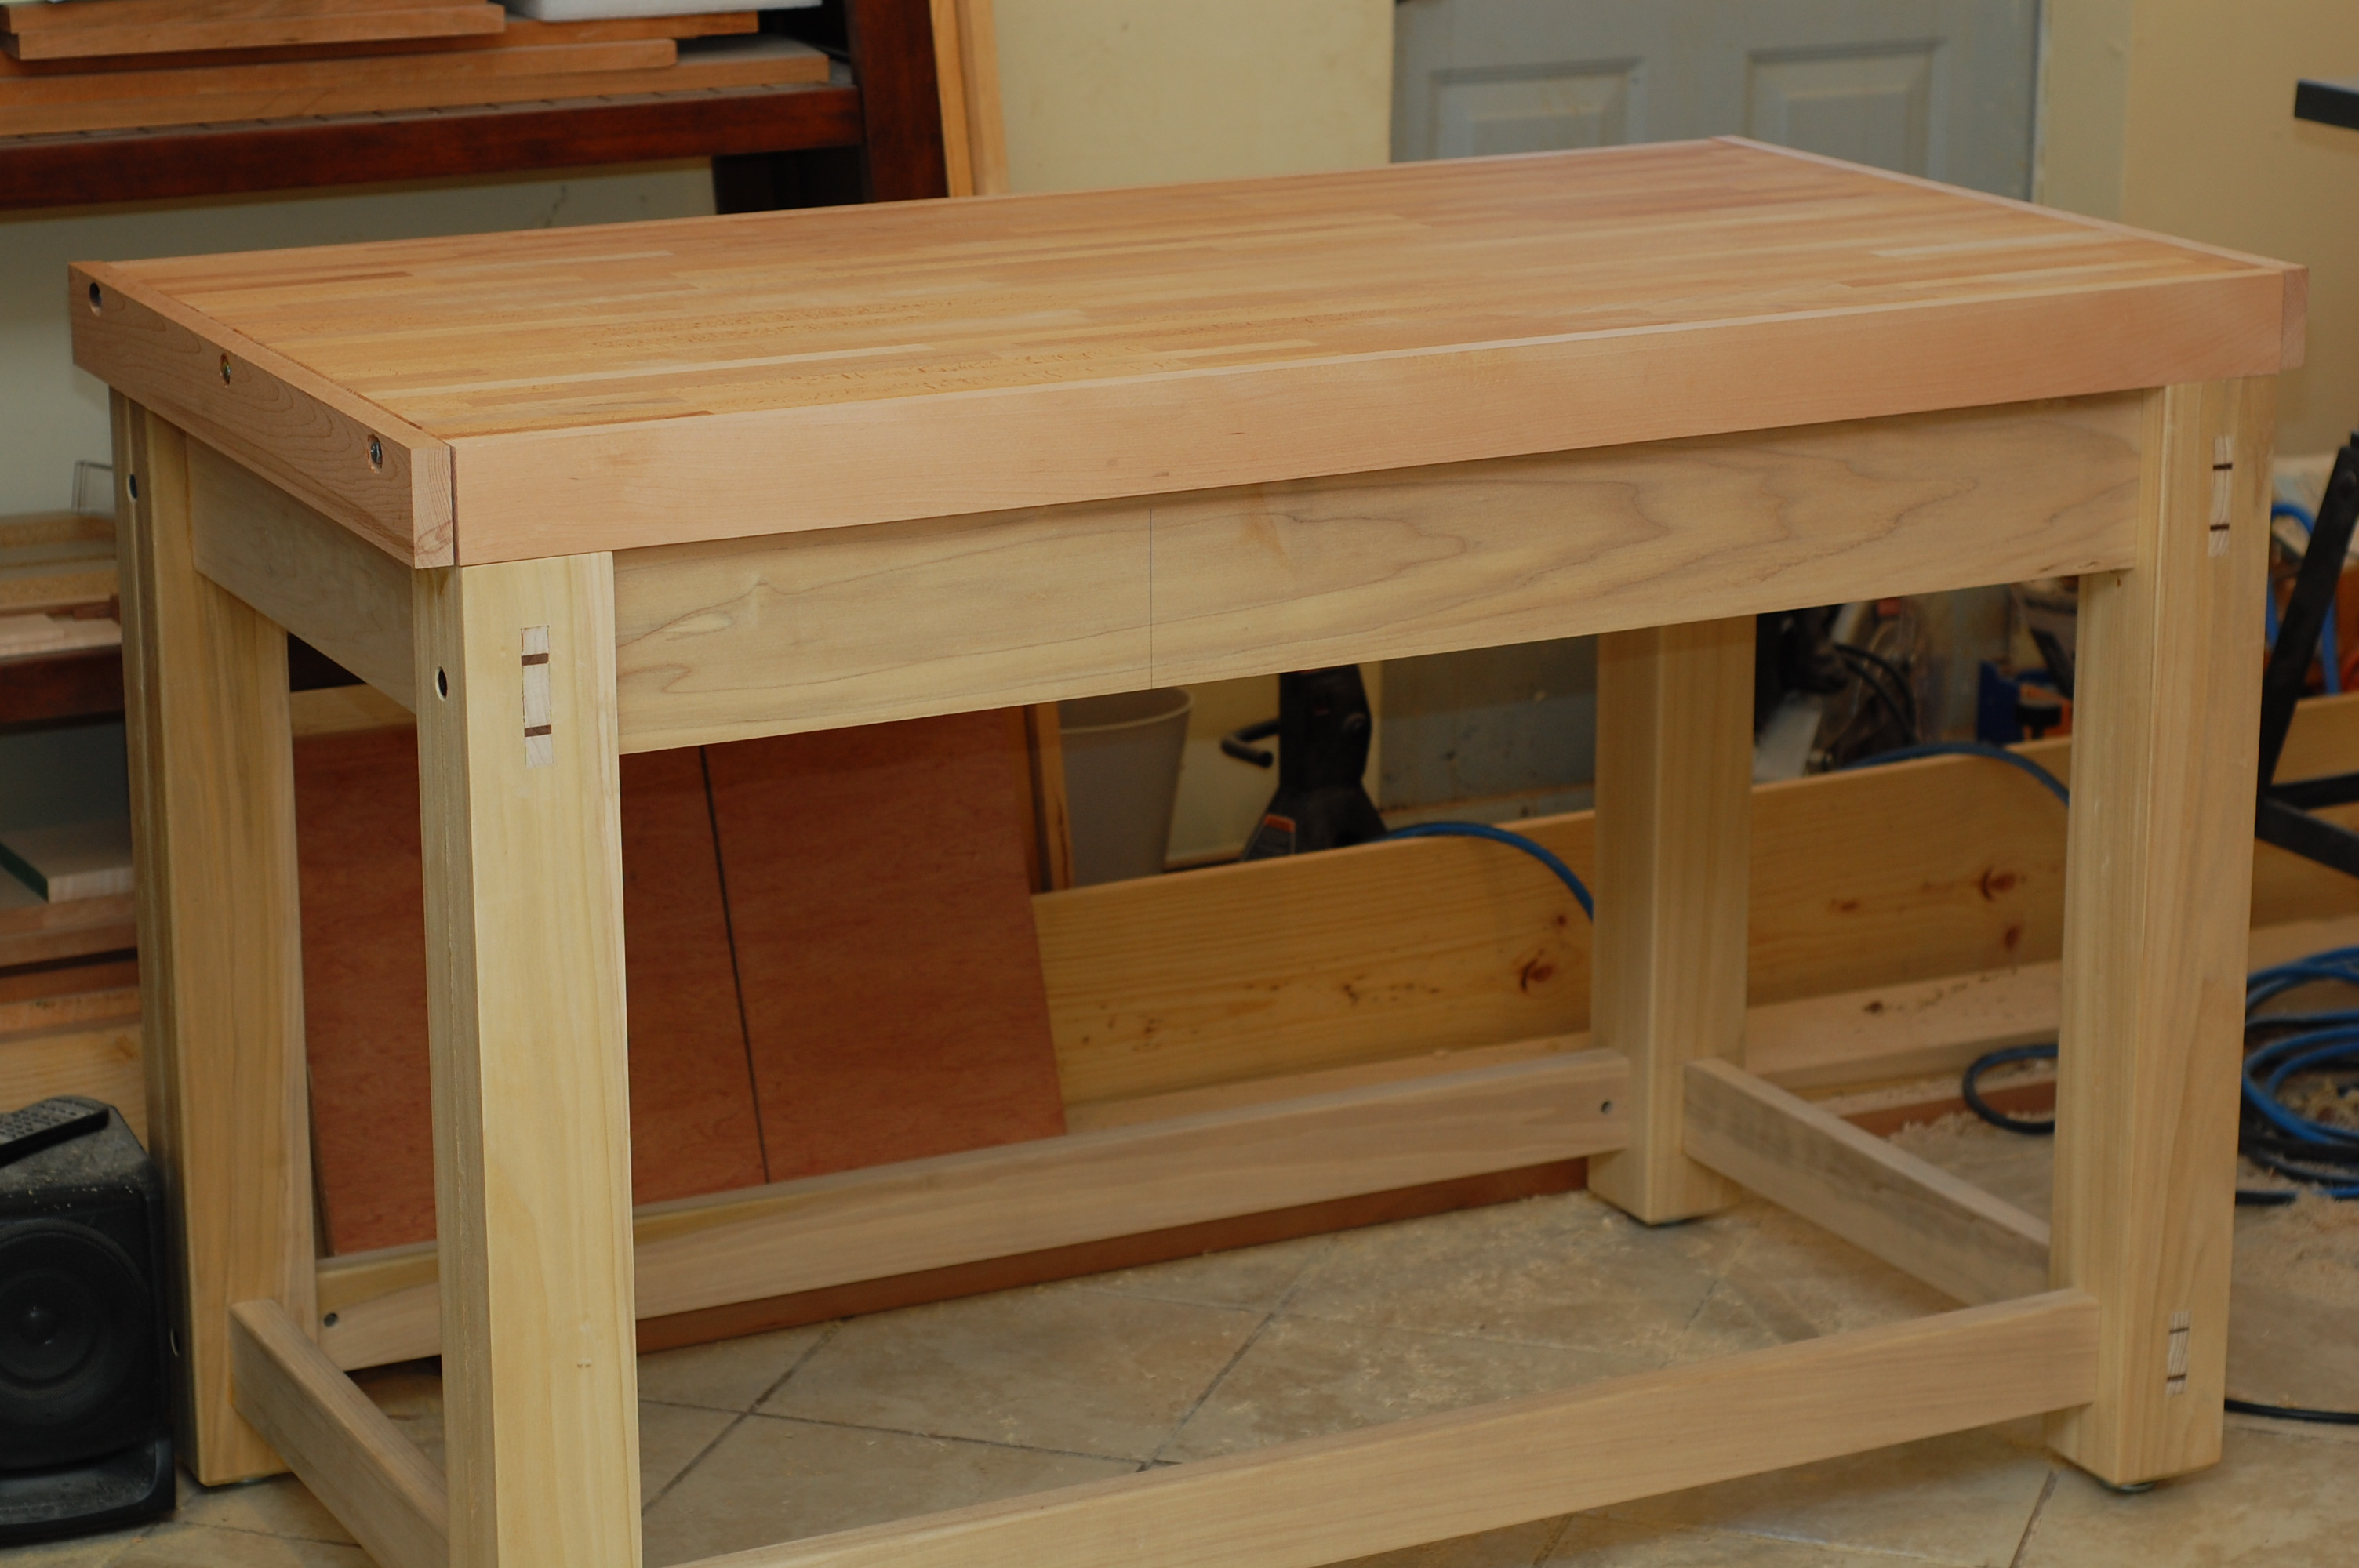 Best ideas about Workbench DIY Plans . Save or Pin woodworking workbench Cross Grain Now.